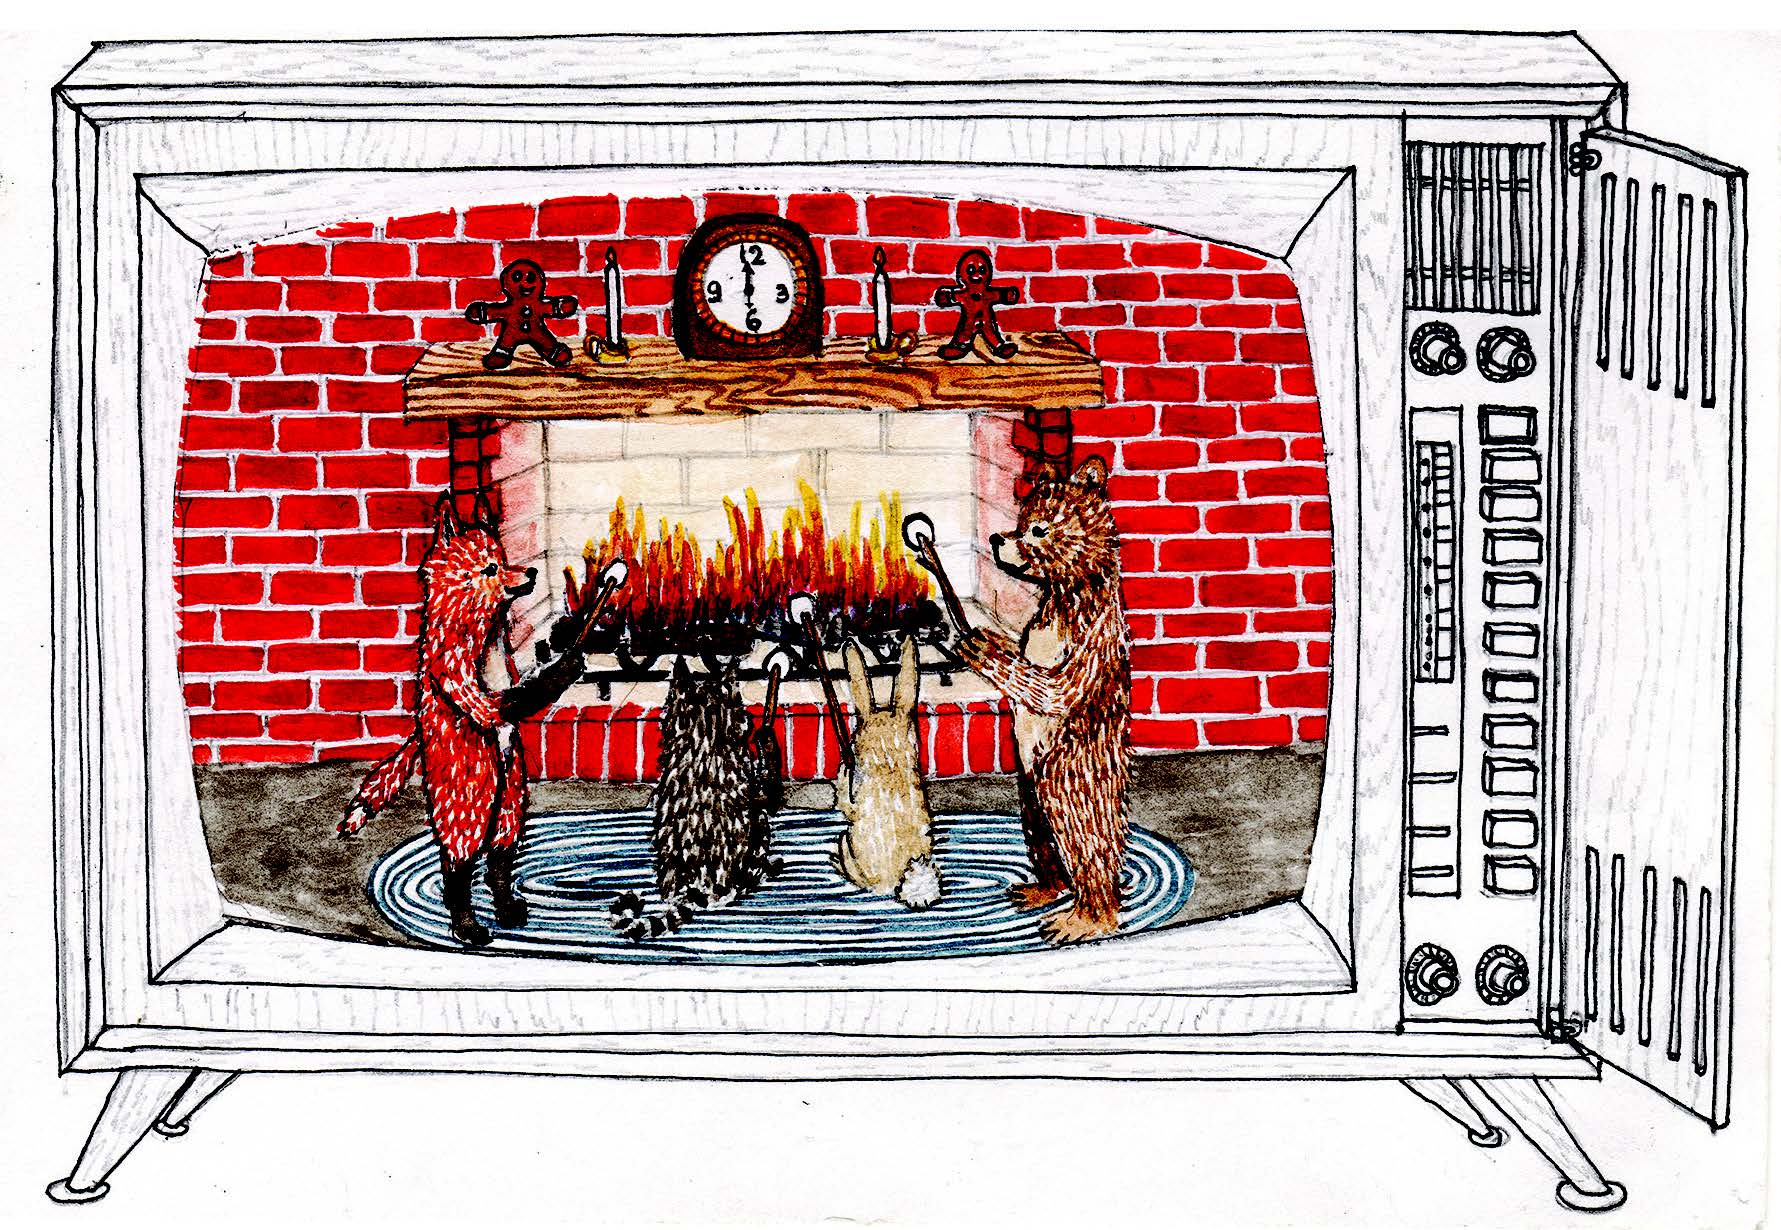 2019 Holiday Card Fireside Runner Up Prize